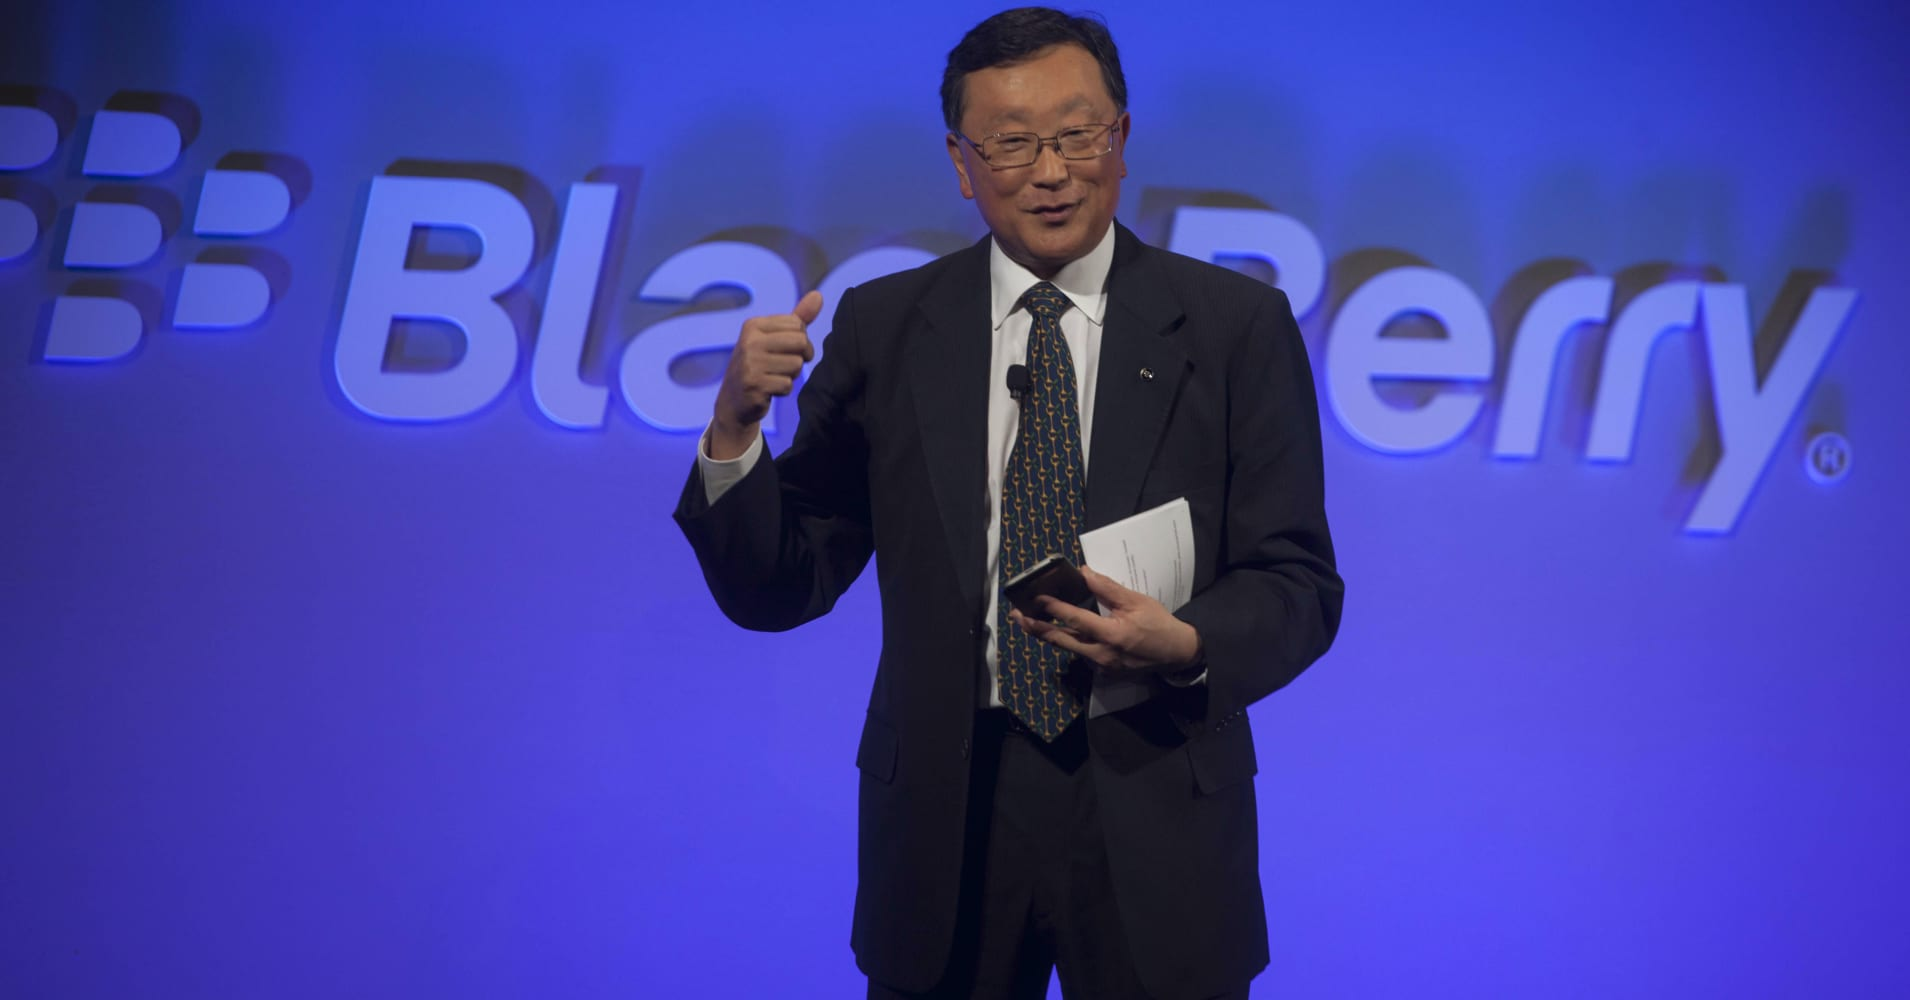 BlackBerry launches cybersecurity product for driverless cars called Jarvis